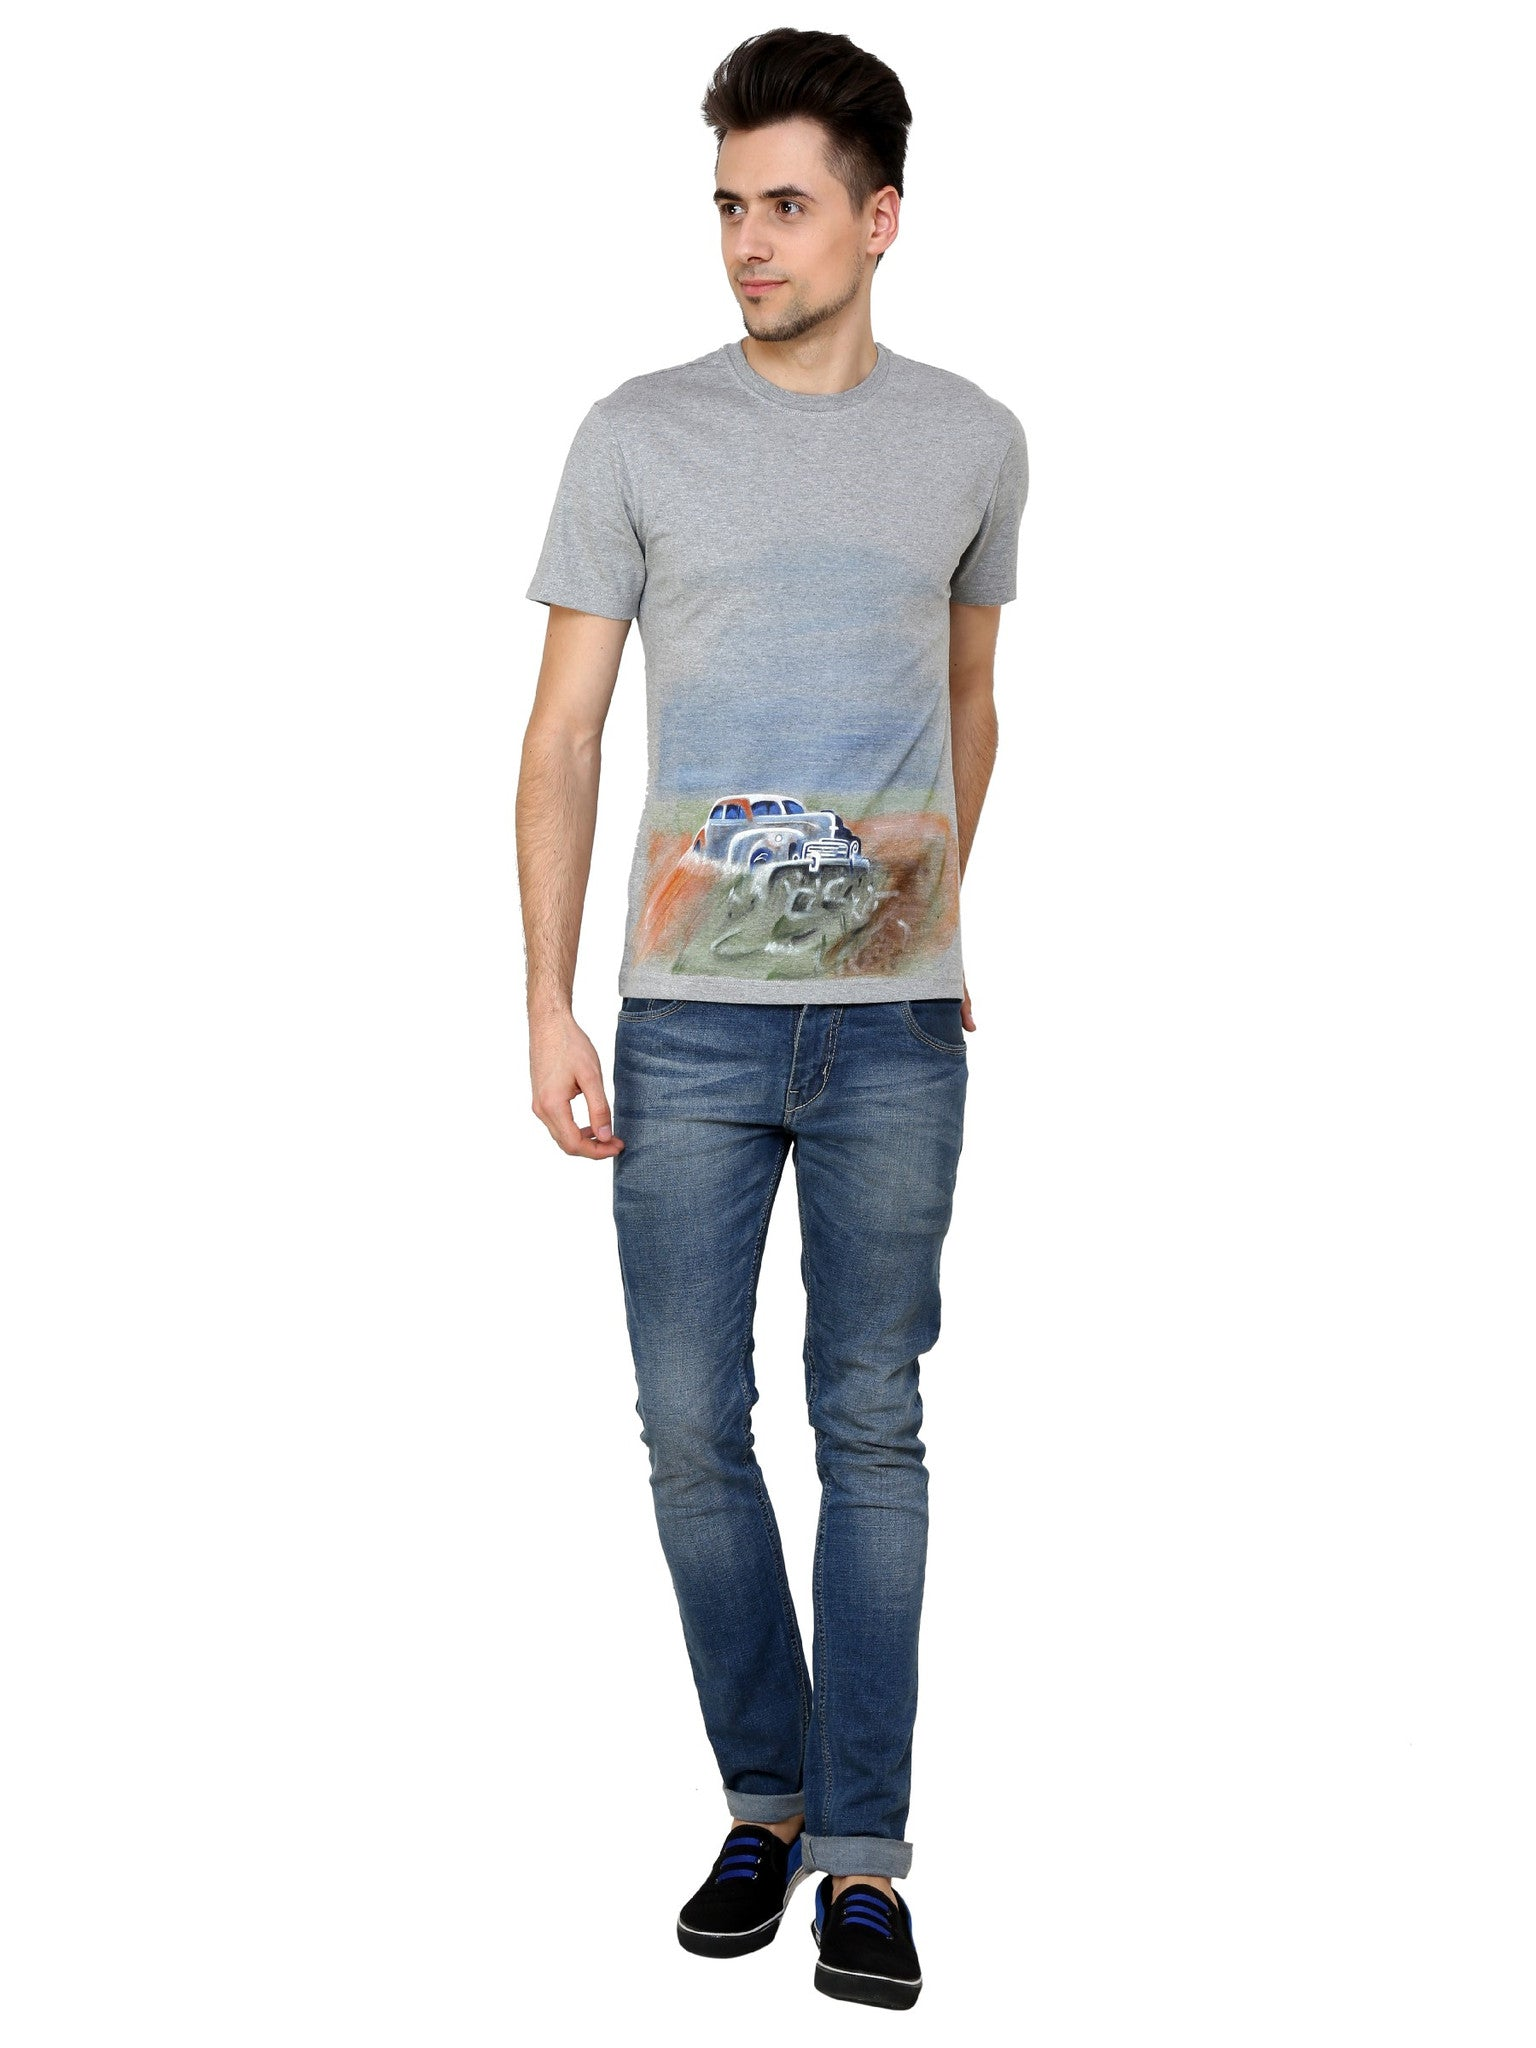 Hand-painted Vintage Car Grey T-shirt - Rang Rage  - 4